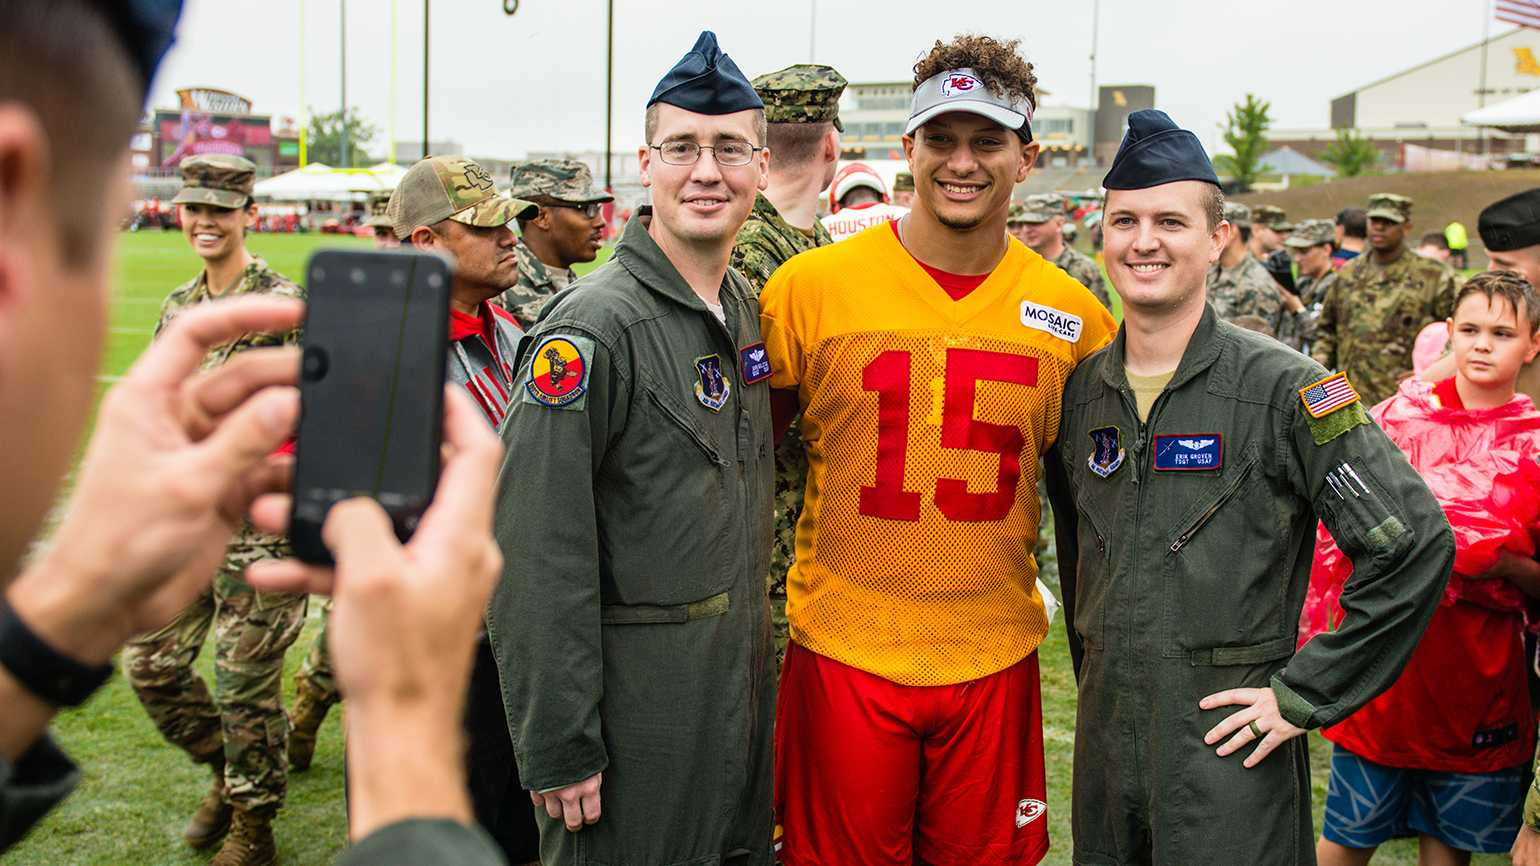 Members of the 139th Airlift Wing, Missouri Air National Guard pose with Patrick Mahomes on 08/14/19